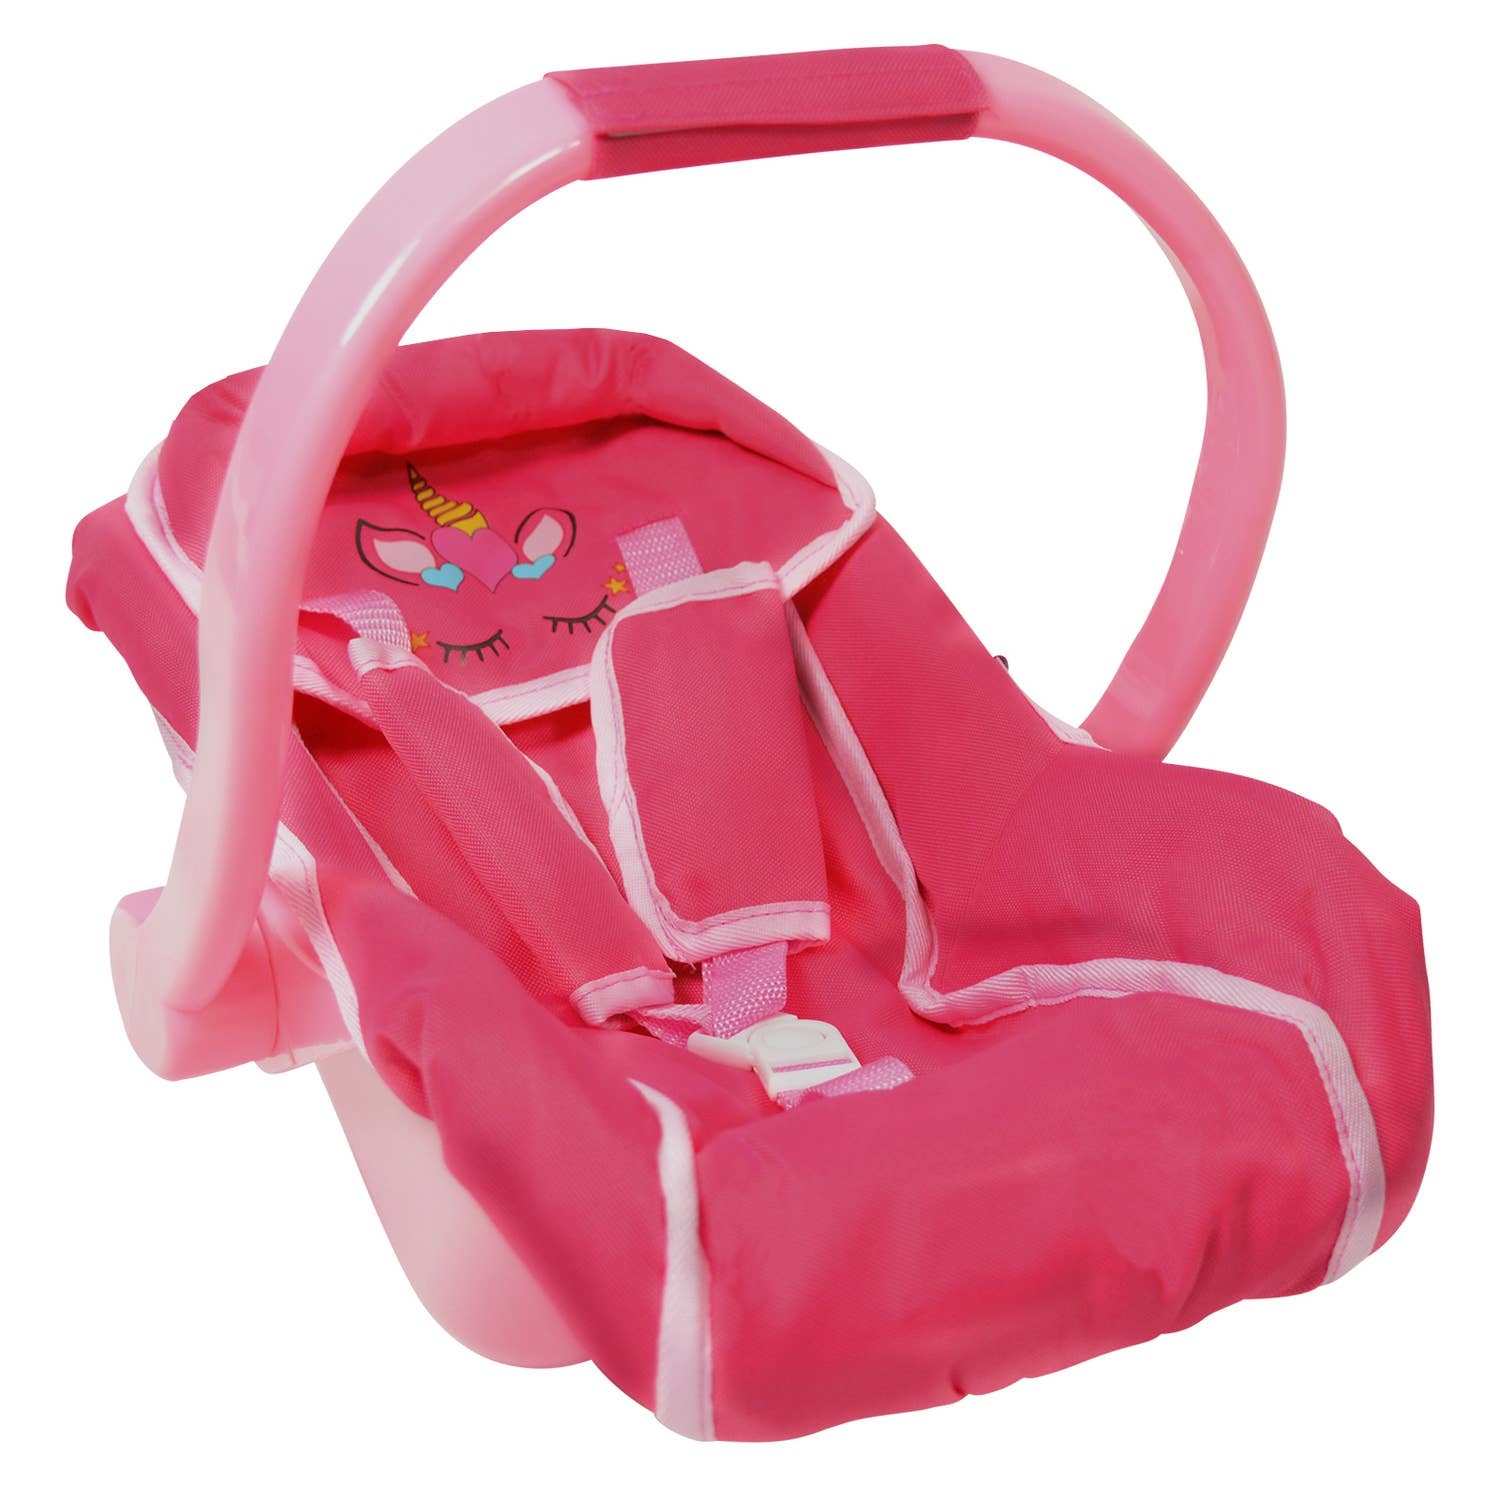 The New York Doll Collection Baby Doll Car Seat Unicorn Design